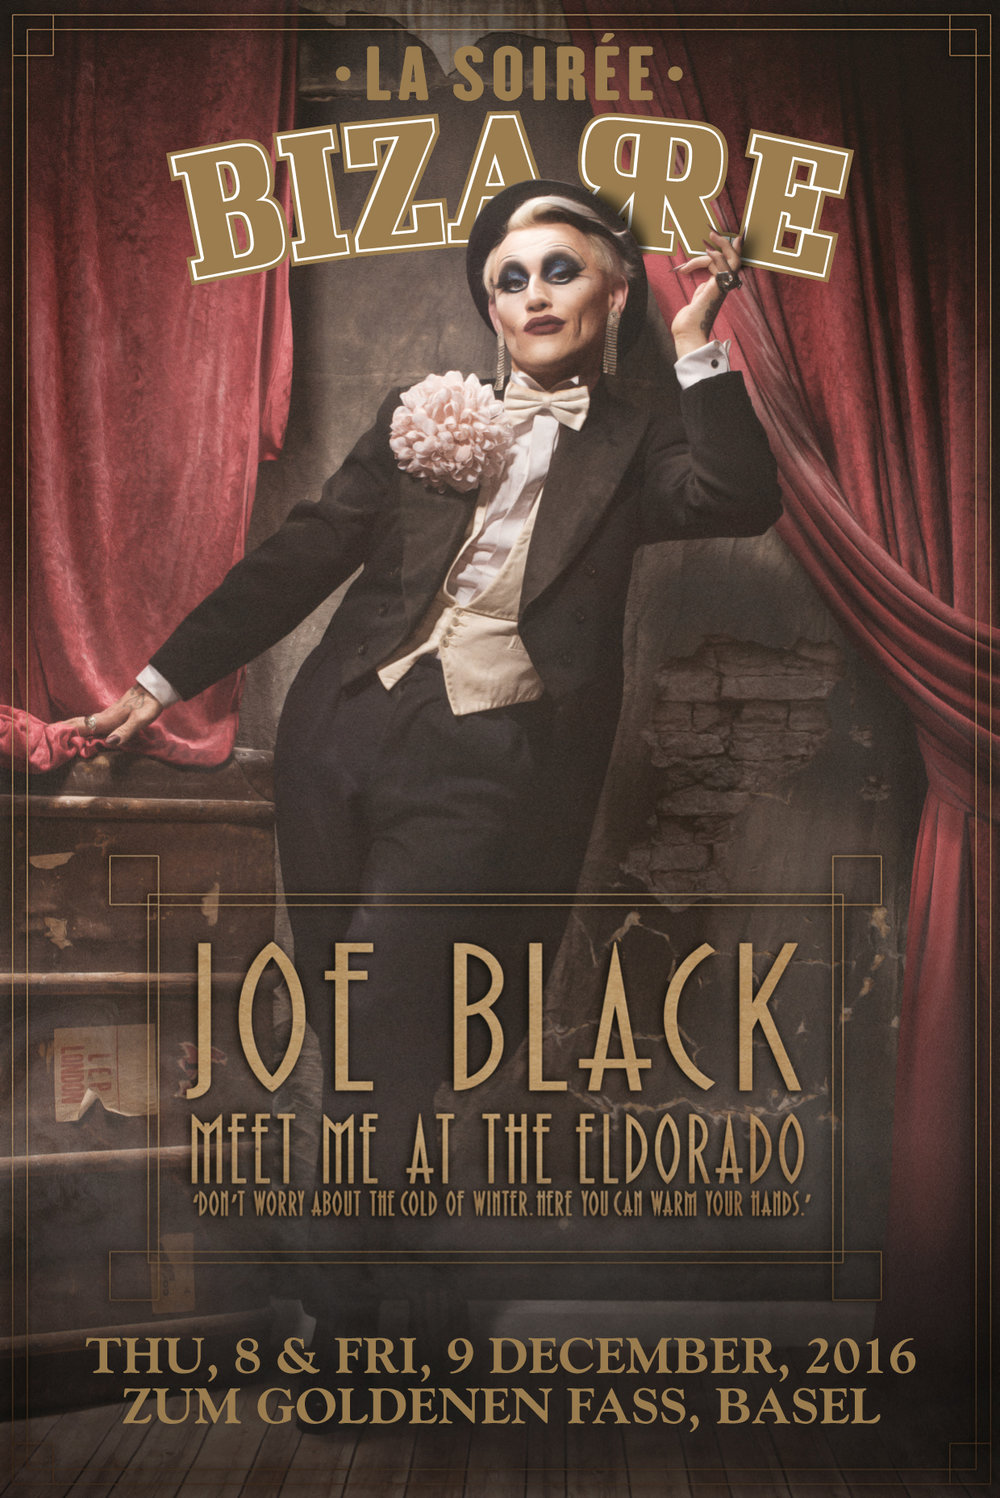 JOE BLACK IN BASEL CABARET BIZARRE